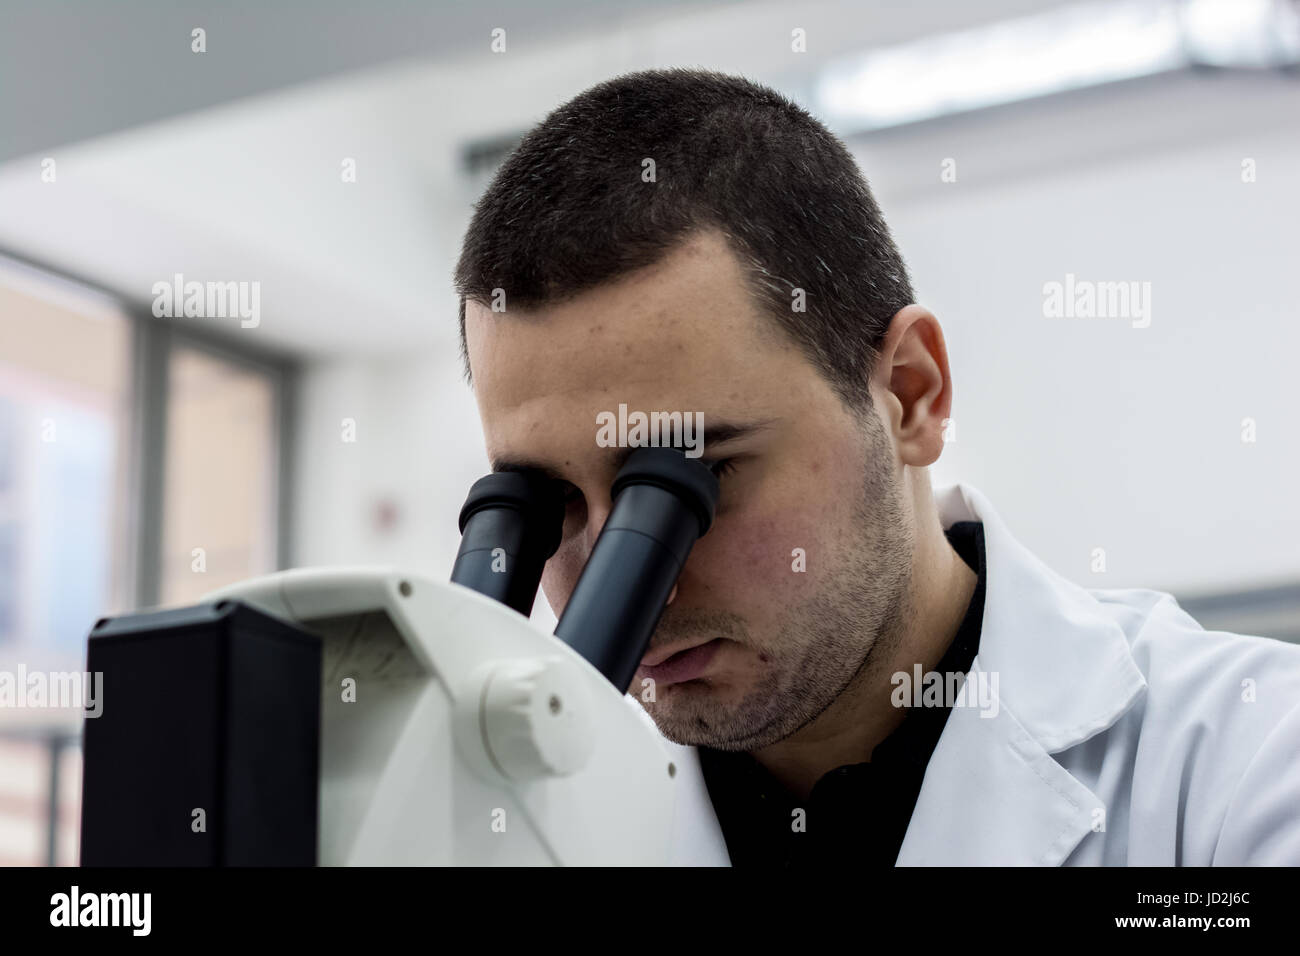 Female medical or scientific researcher man doctor looking through a microscope in a laboratory. Young scientist - Stock Image